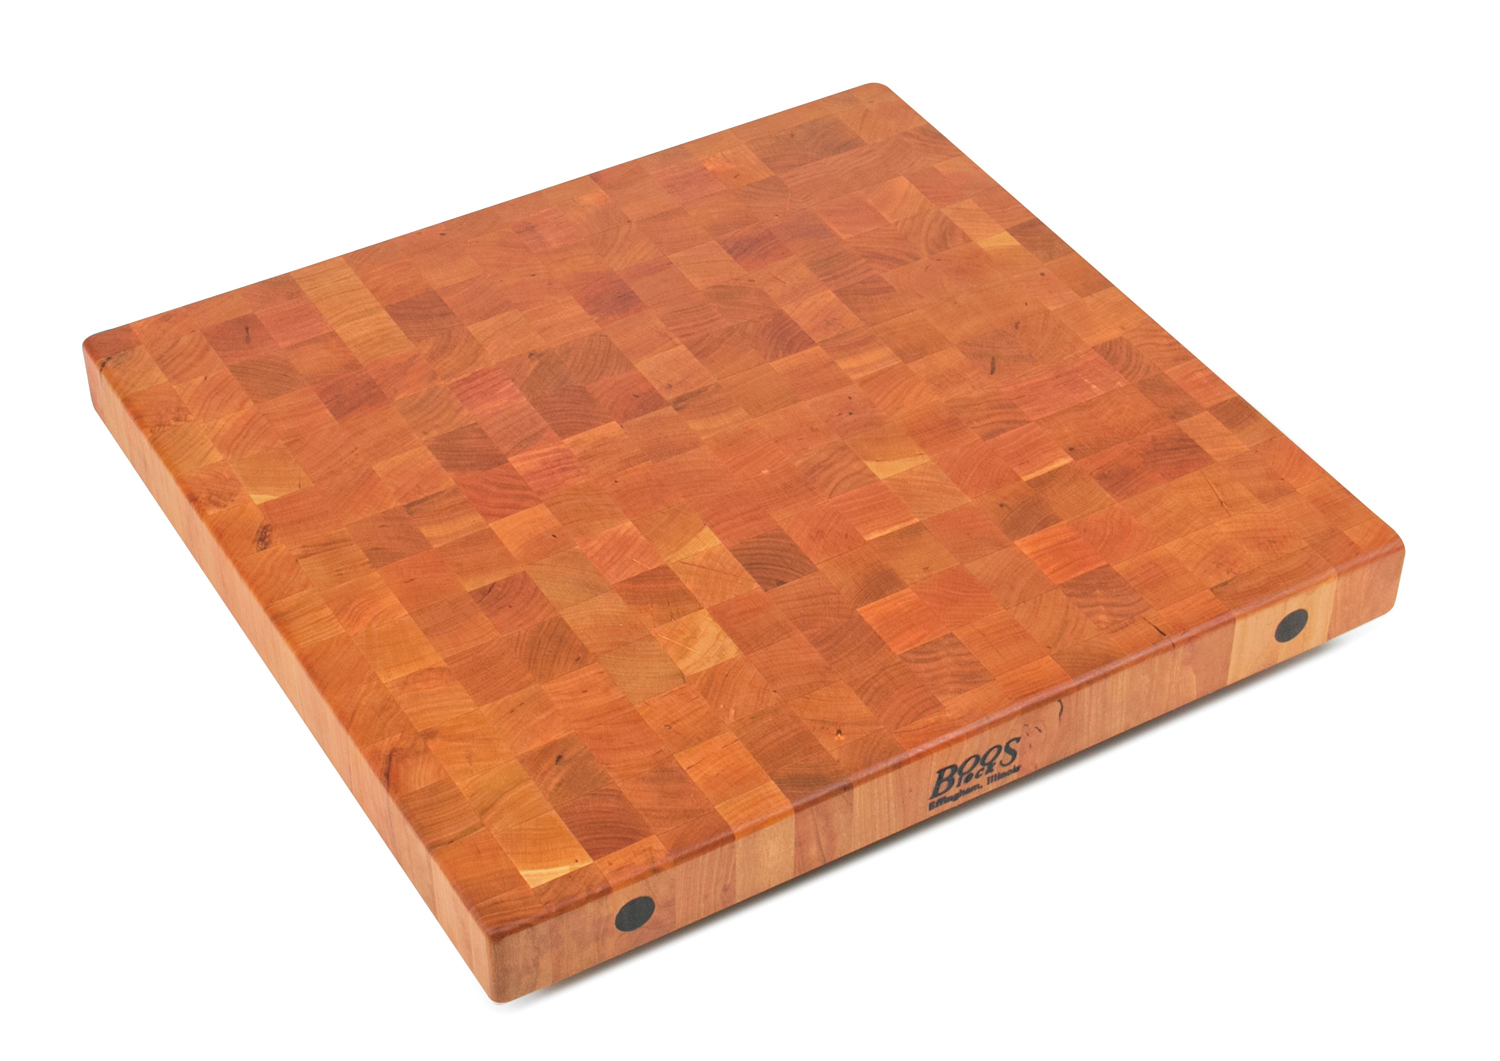 2-1/4 thick cherry end grain butcher block countertops 25 inches wide